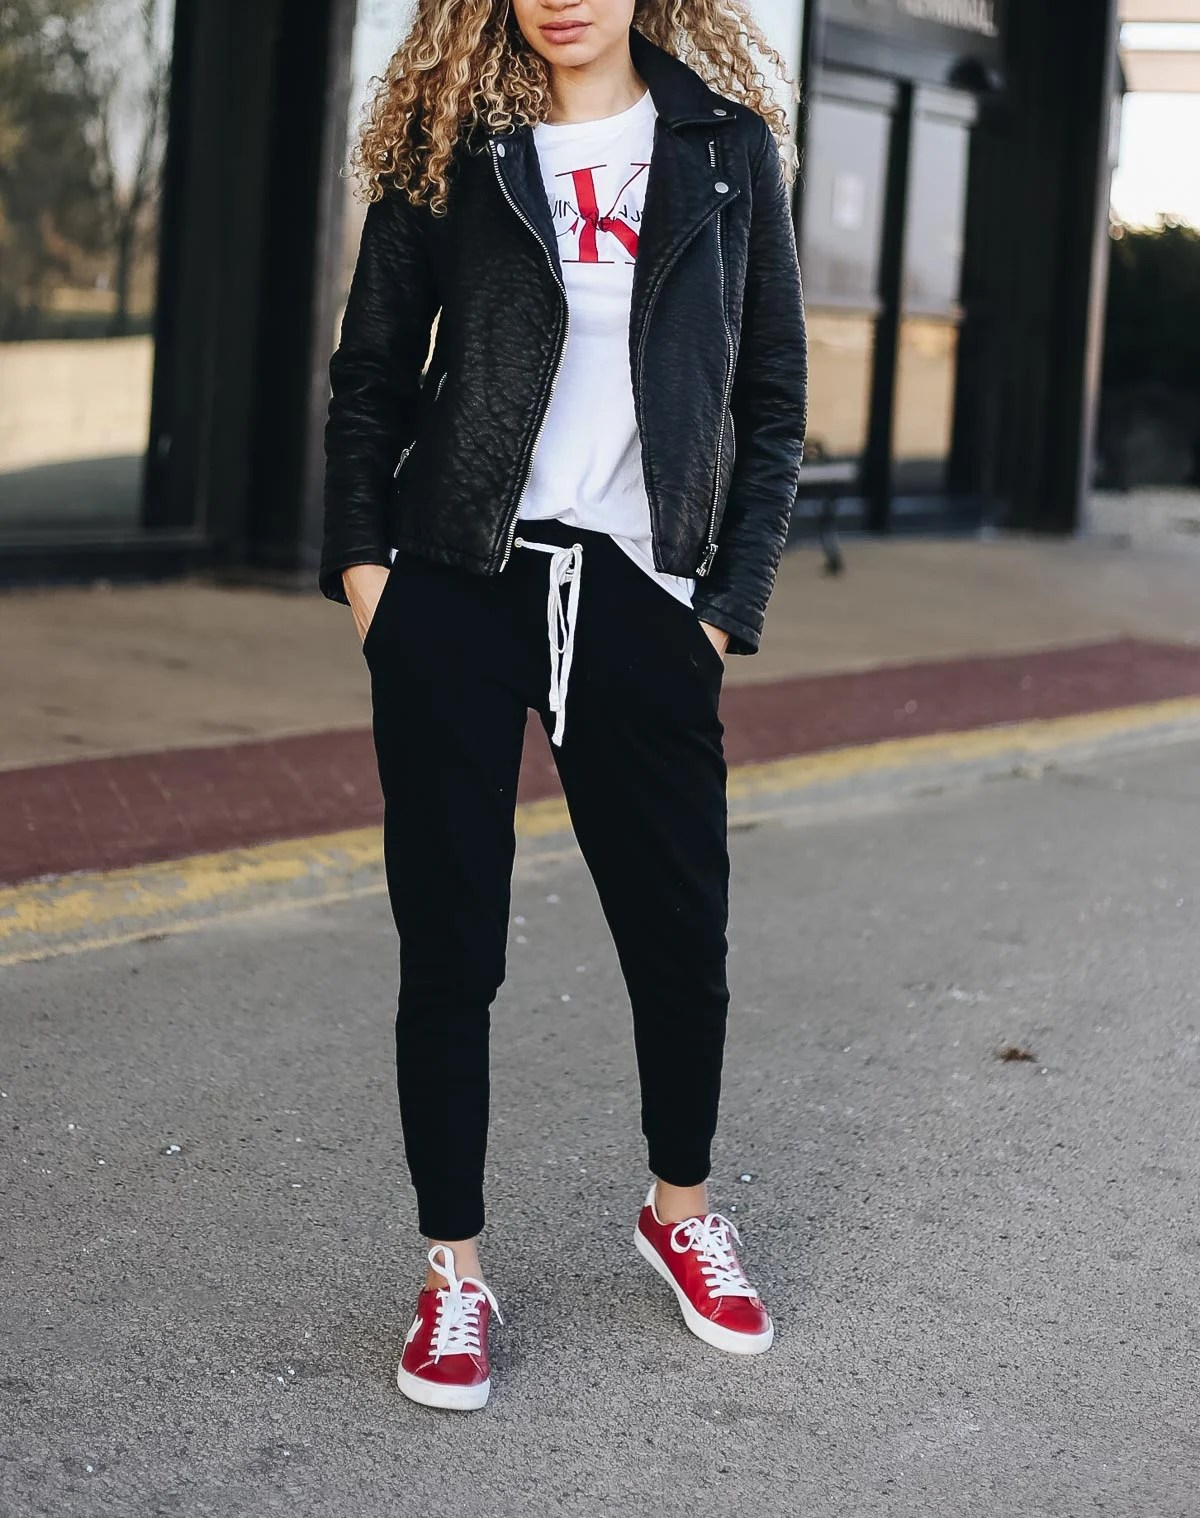 comfy airport outfit with joggers and sneakers